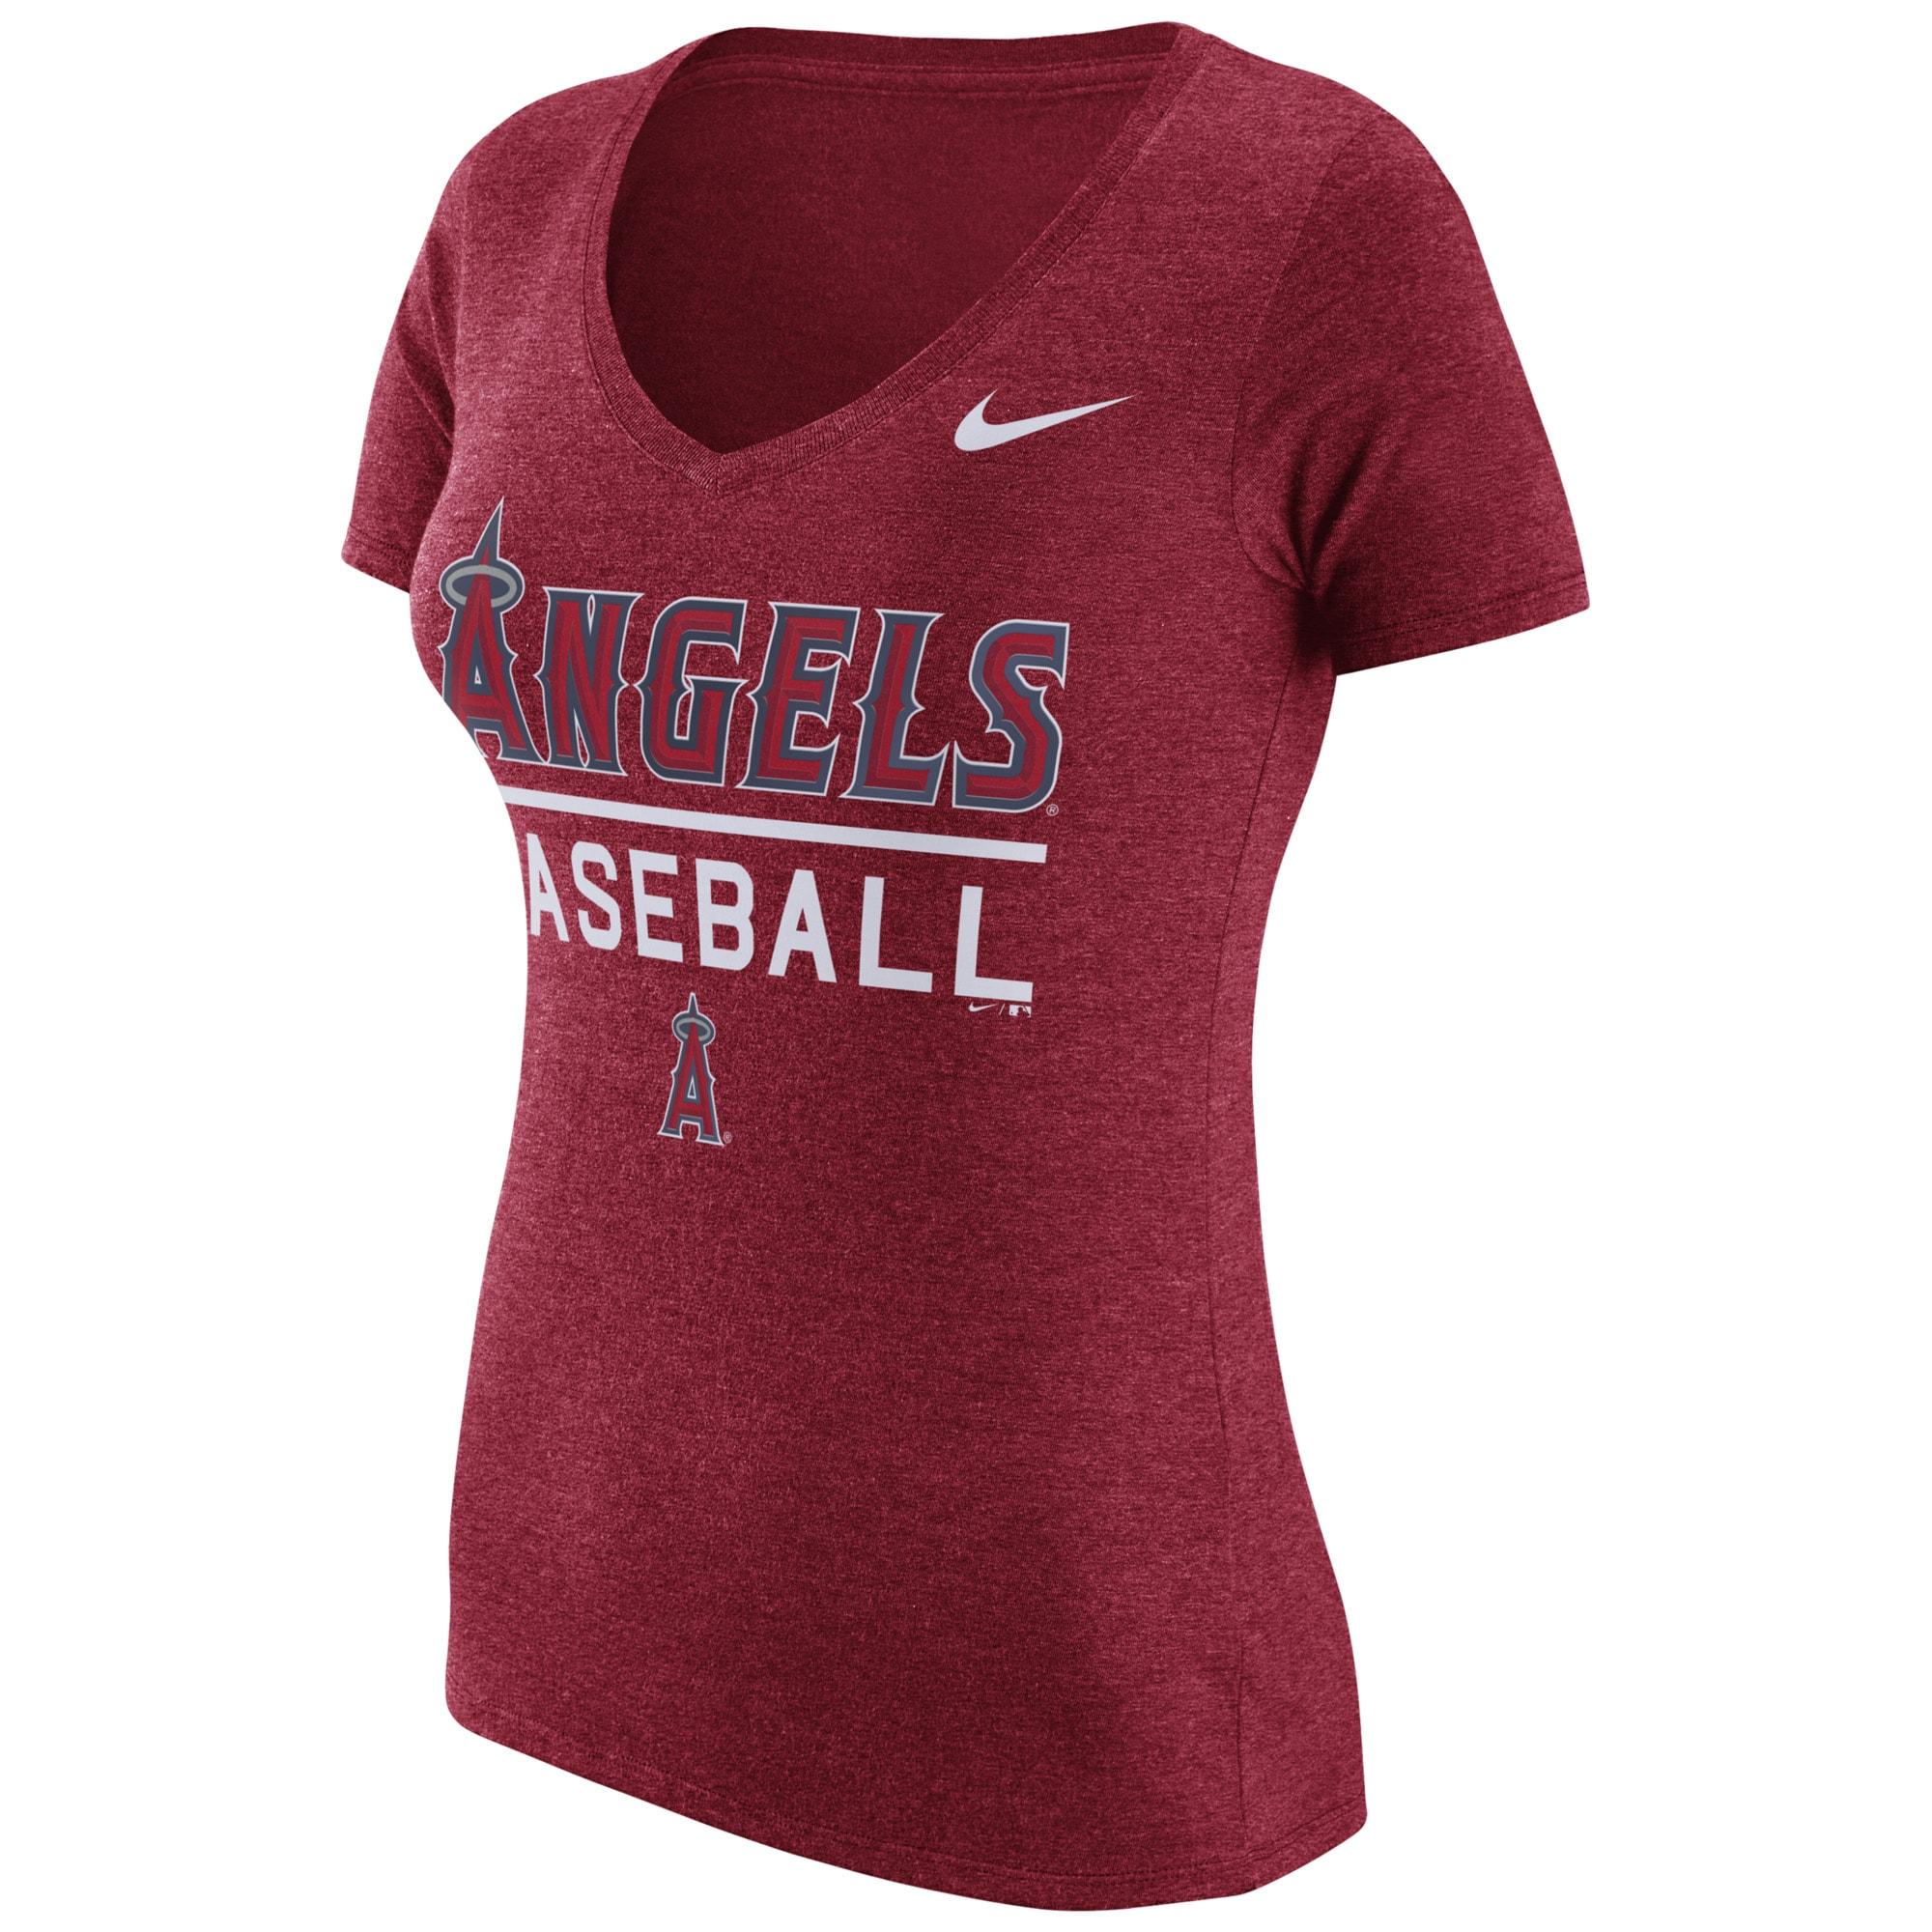 Los Angeles Angels Nike Women's Practice 1.7 Tri-Blend V-Neck T-Shirt - Heathered Red